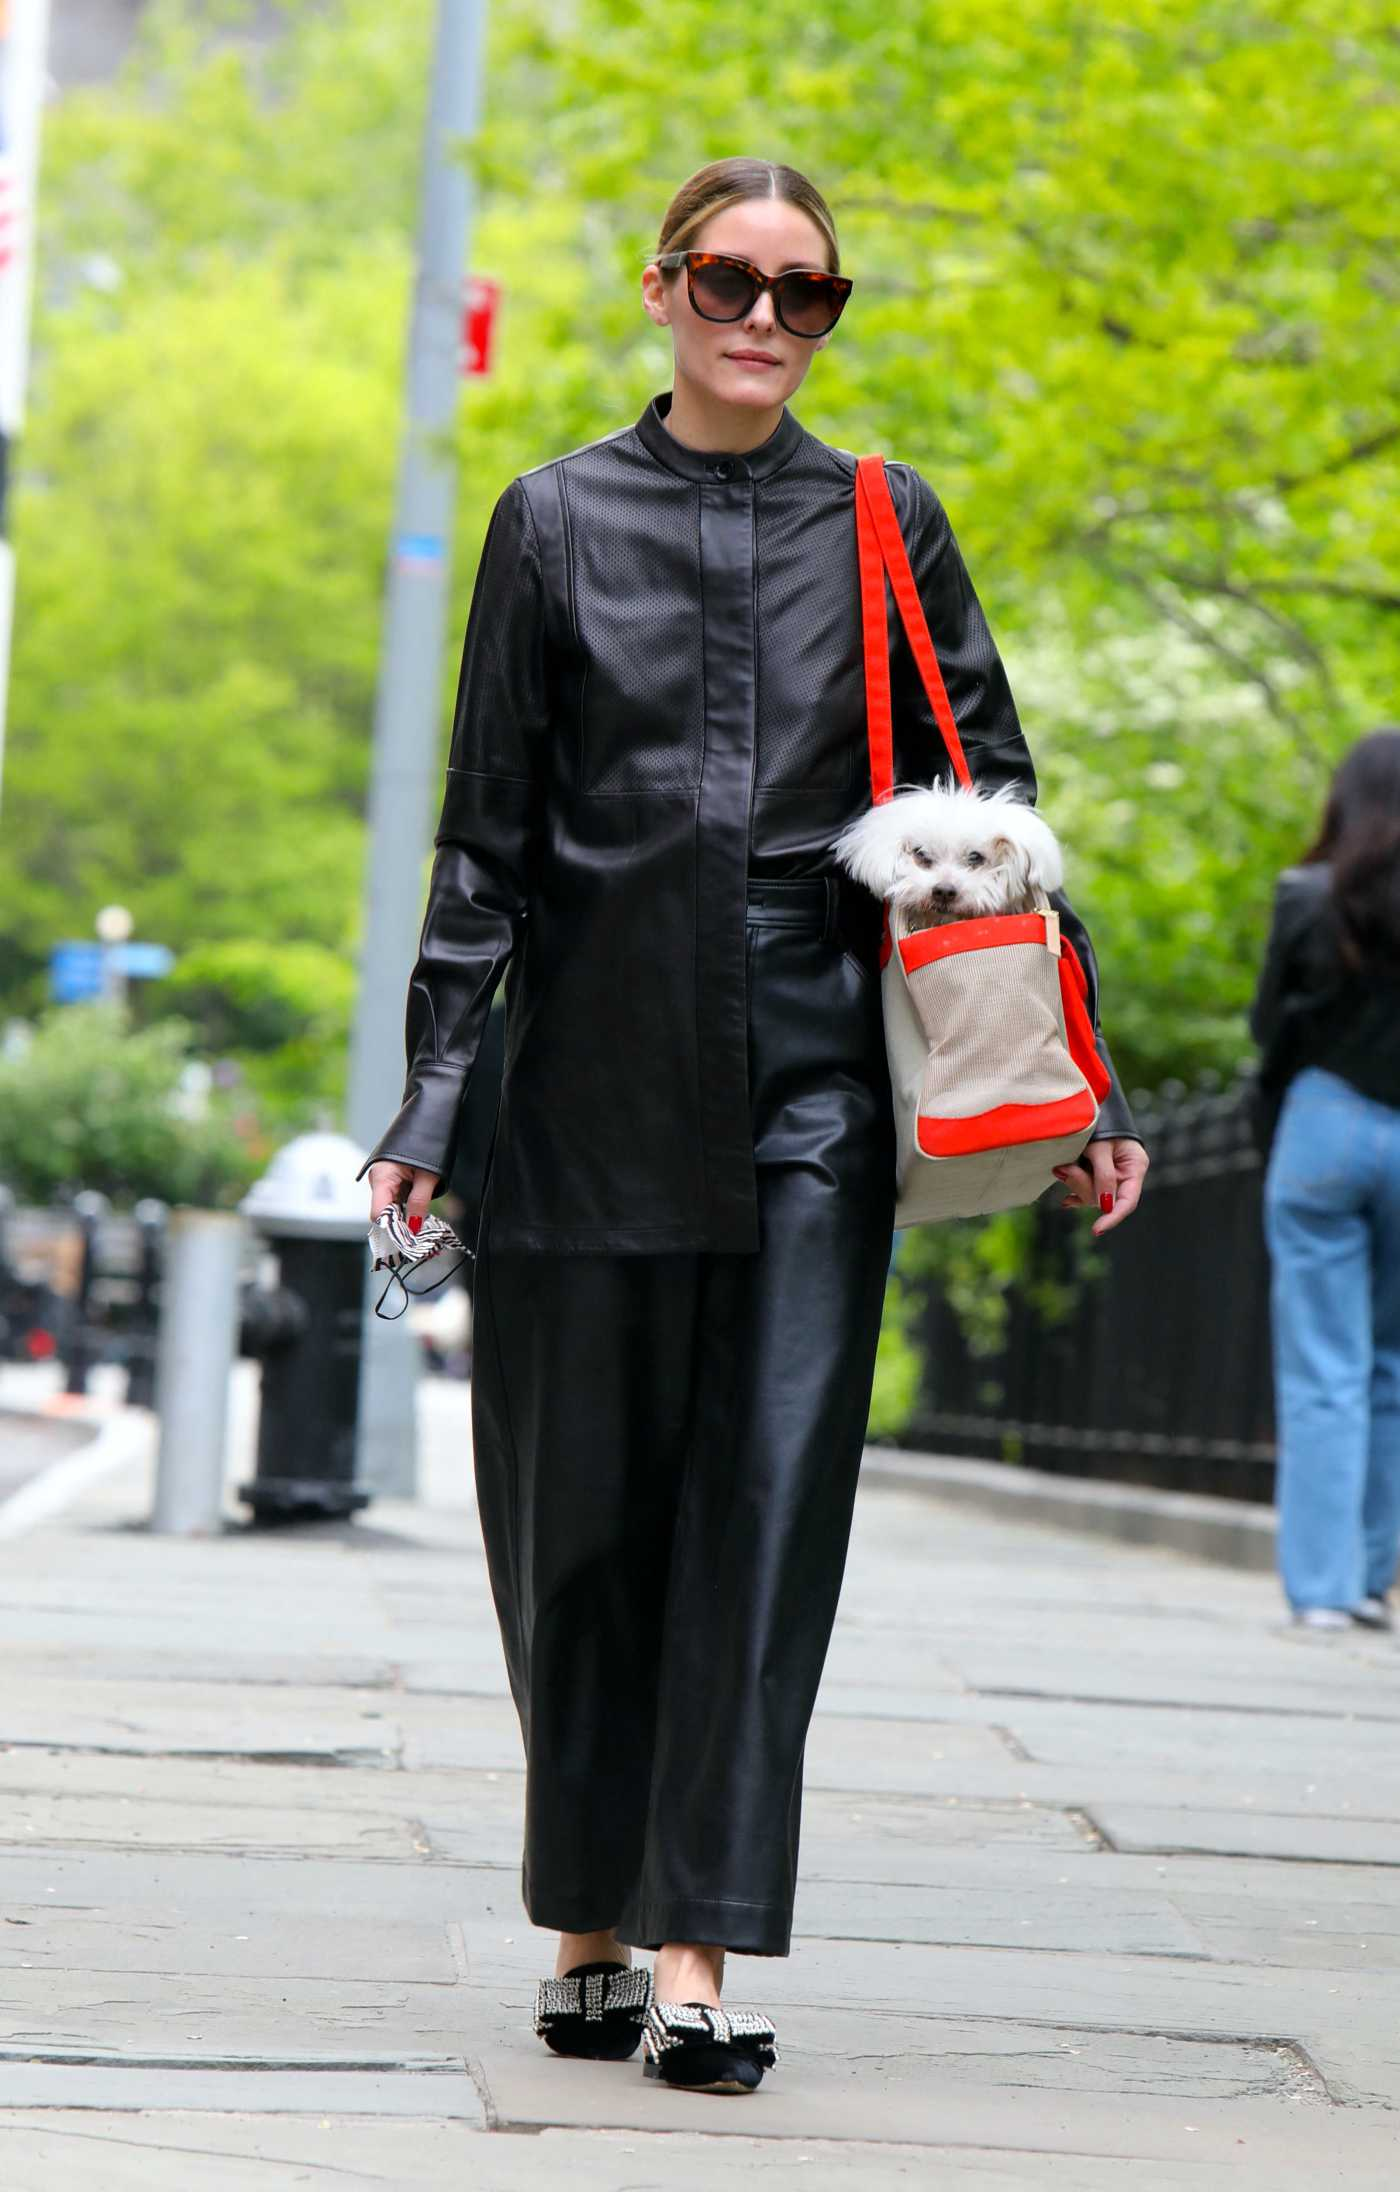 Olivia Palermo in a Black Leather Outfit Was Seen Out at the Park in Brooklyn, NYC 05/07/2021